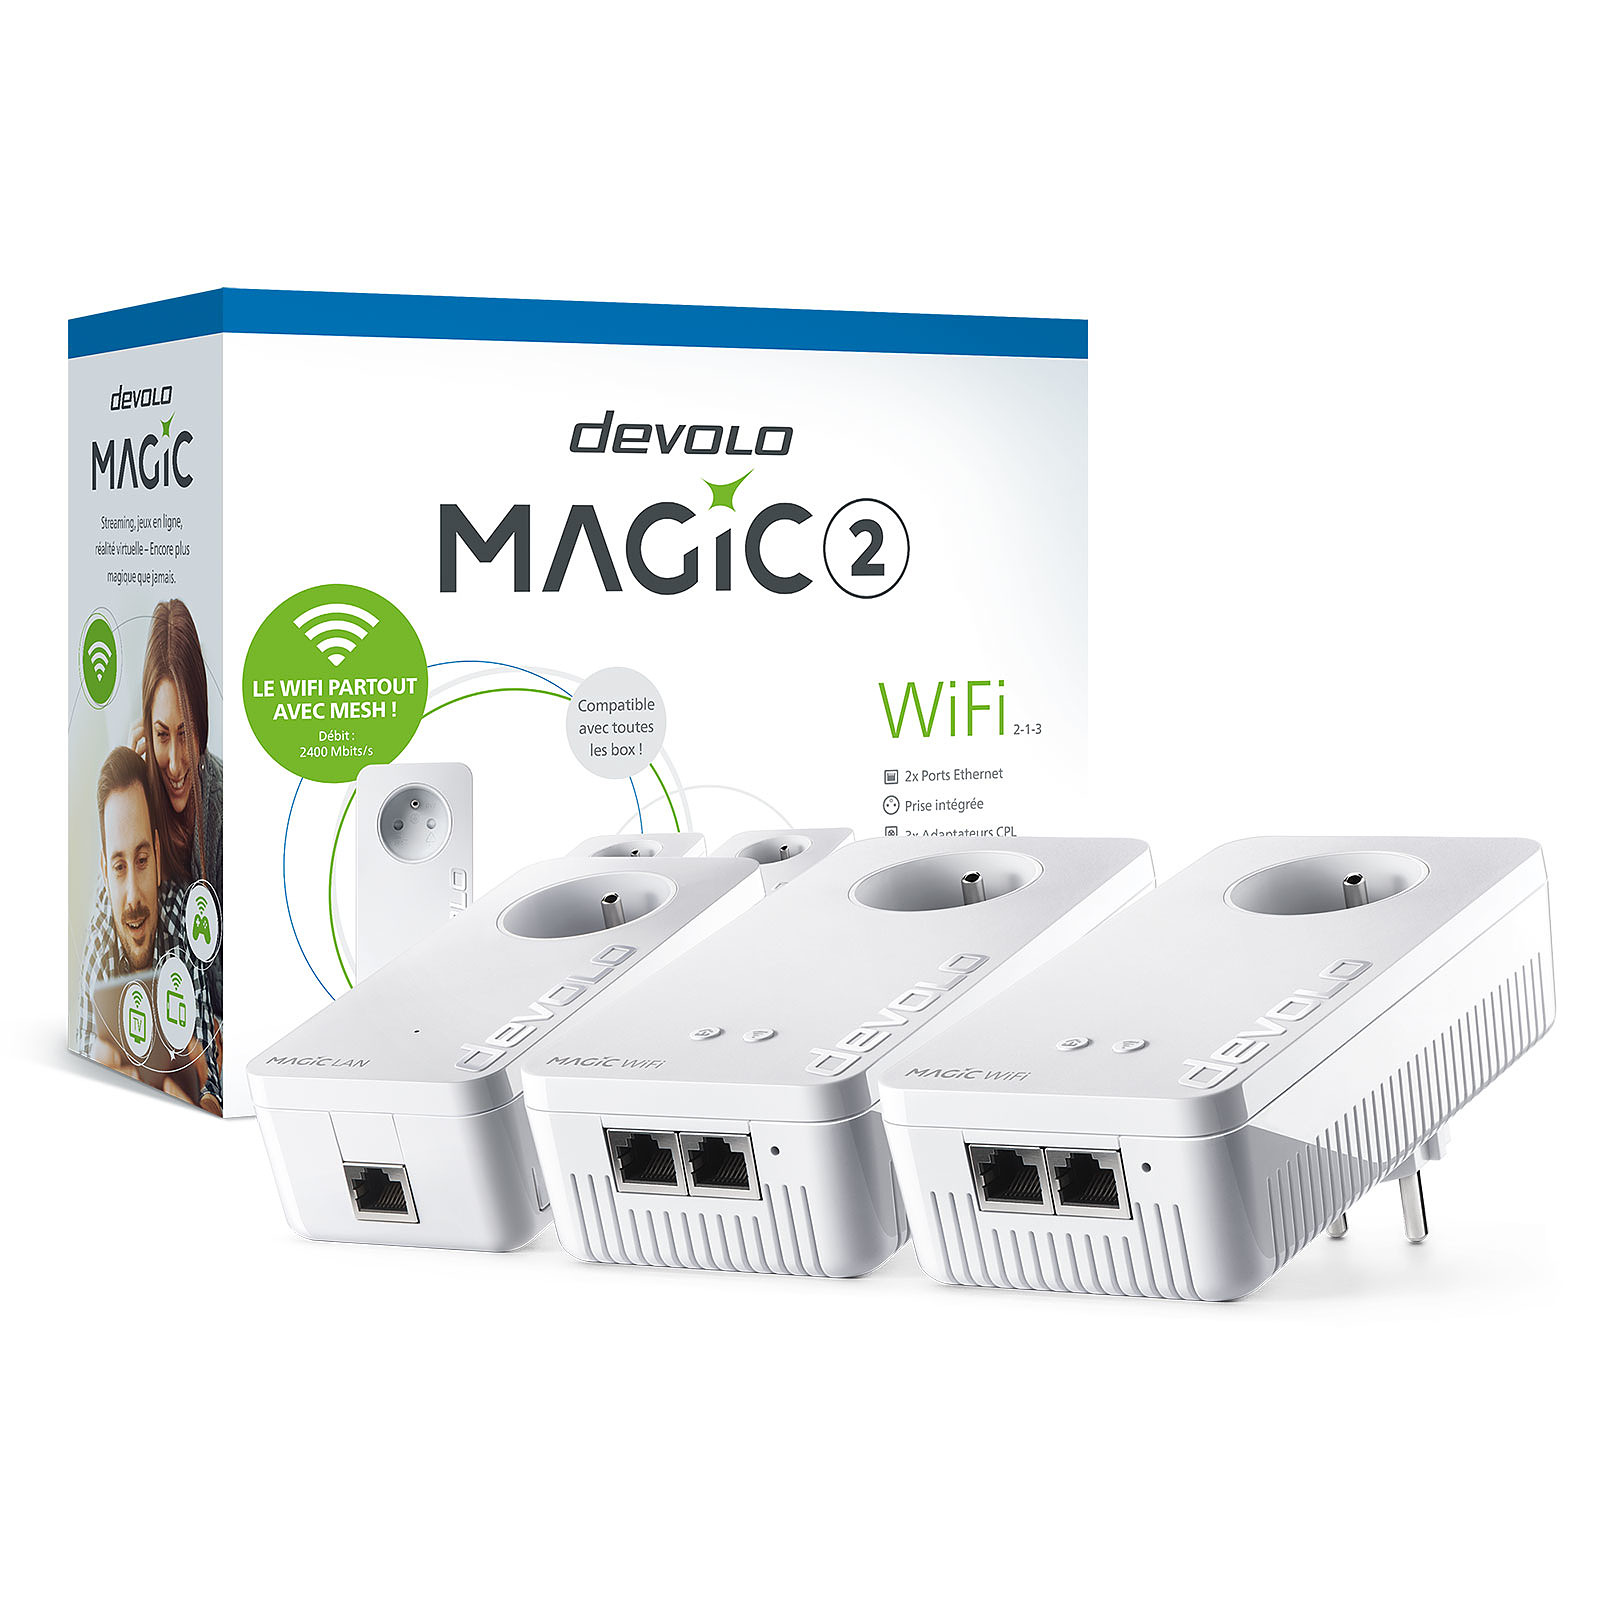 devolo Magic 2 WiFi - Multiroom Kit